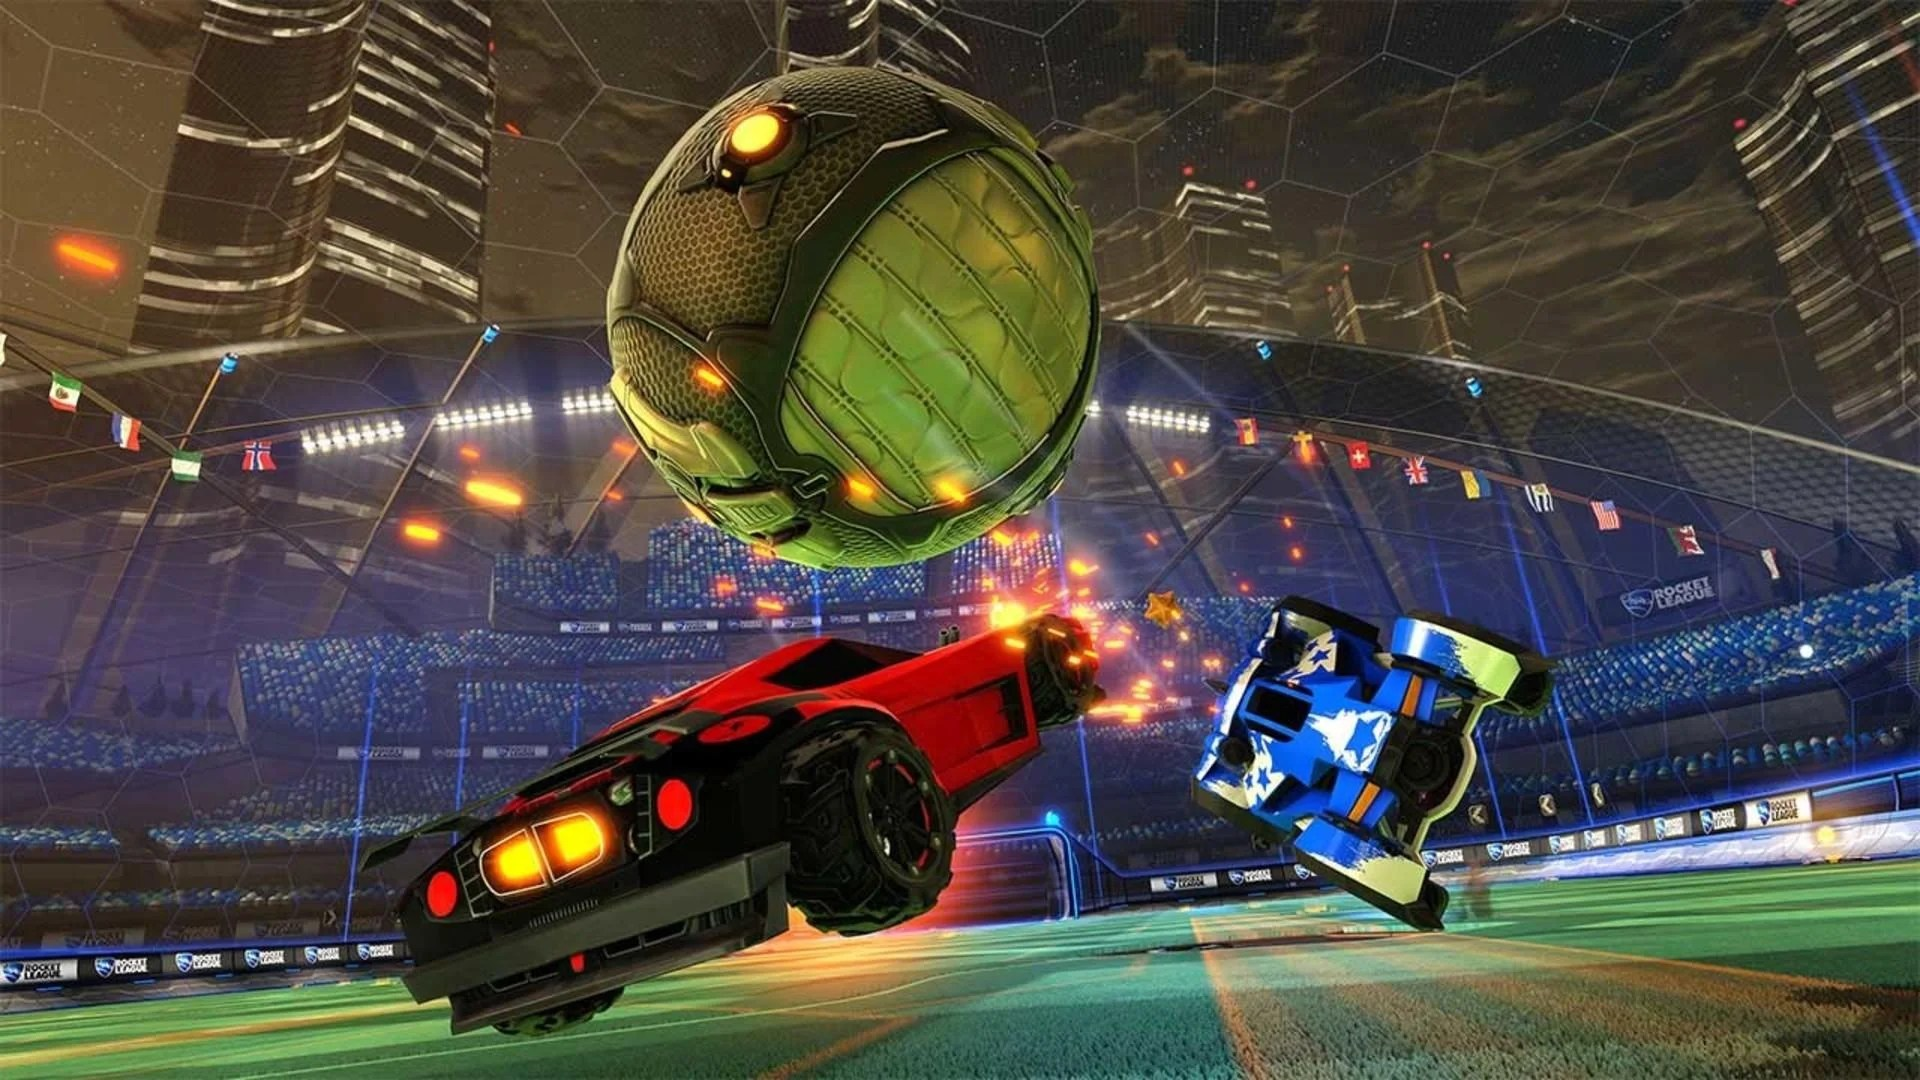 Fast 6 Cars Wallpapers Screenshots Rocket League 174 Official Site